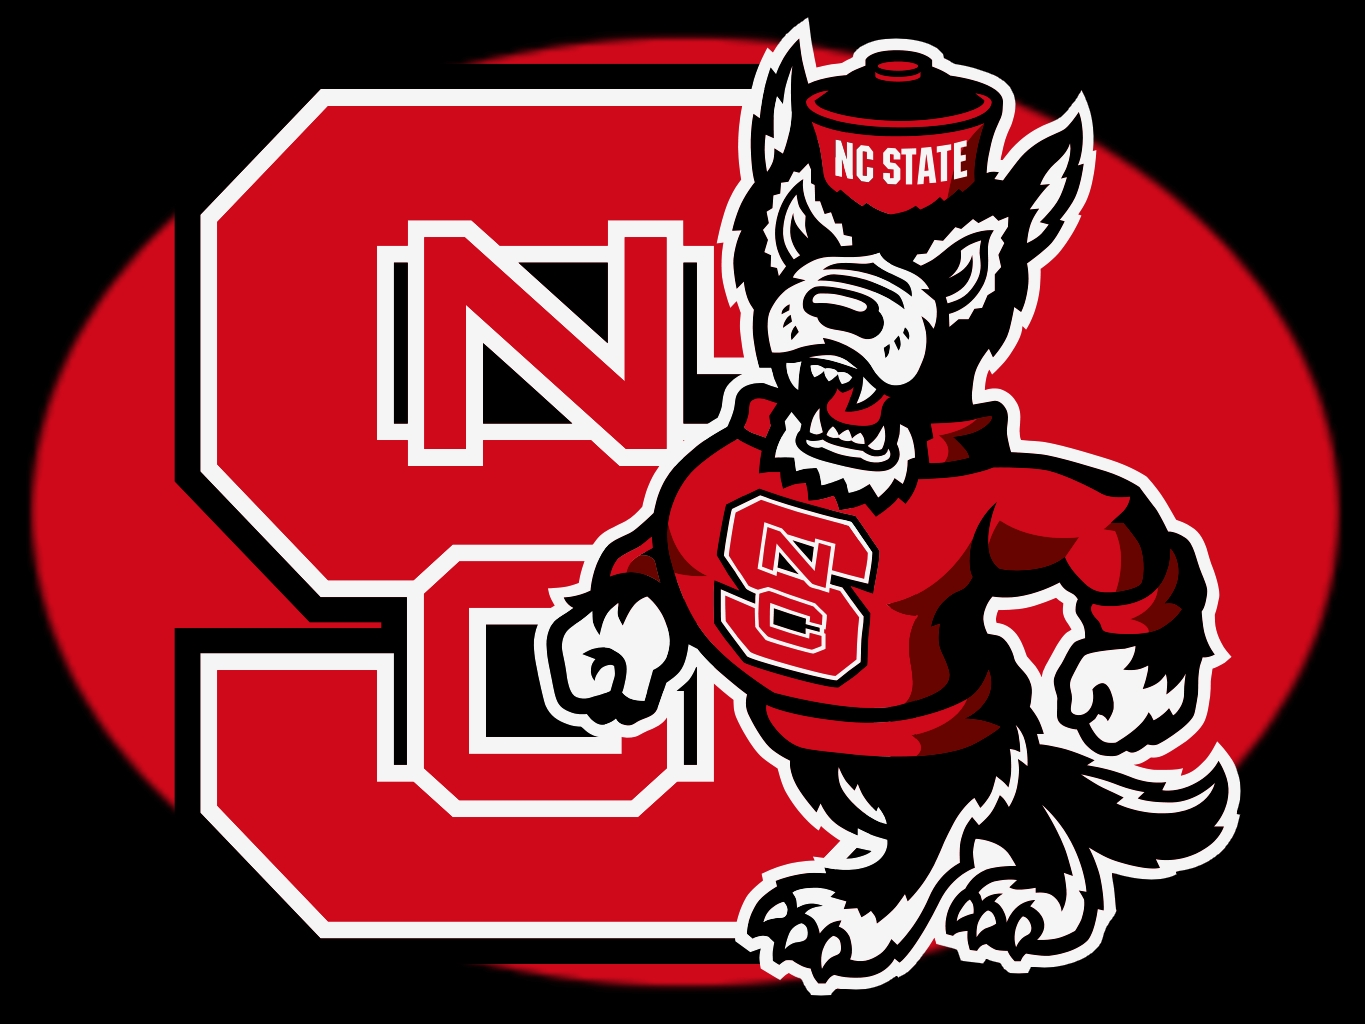 WOLFPACK!!!!! AMAZING GAME!!!!! SO PROUD TO BE A ...